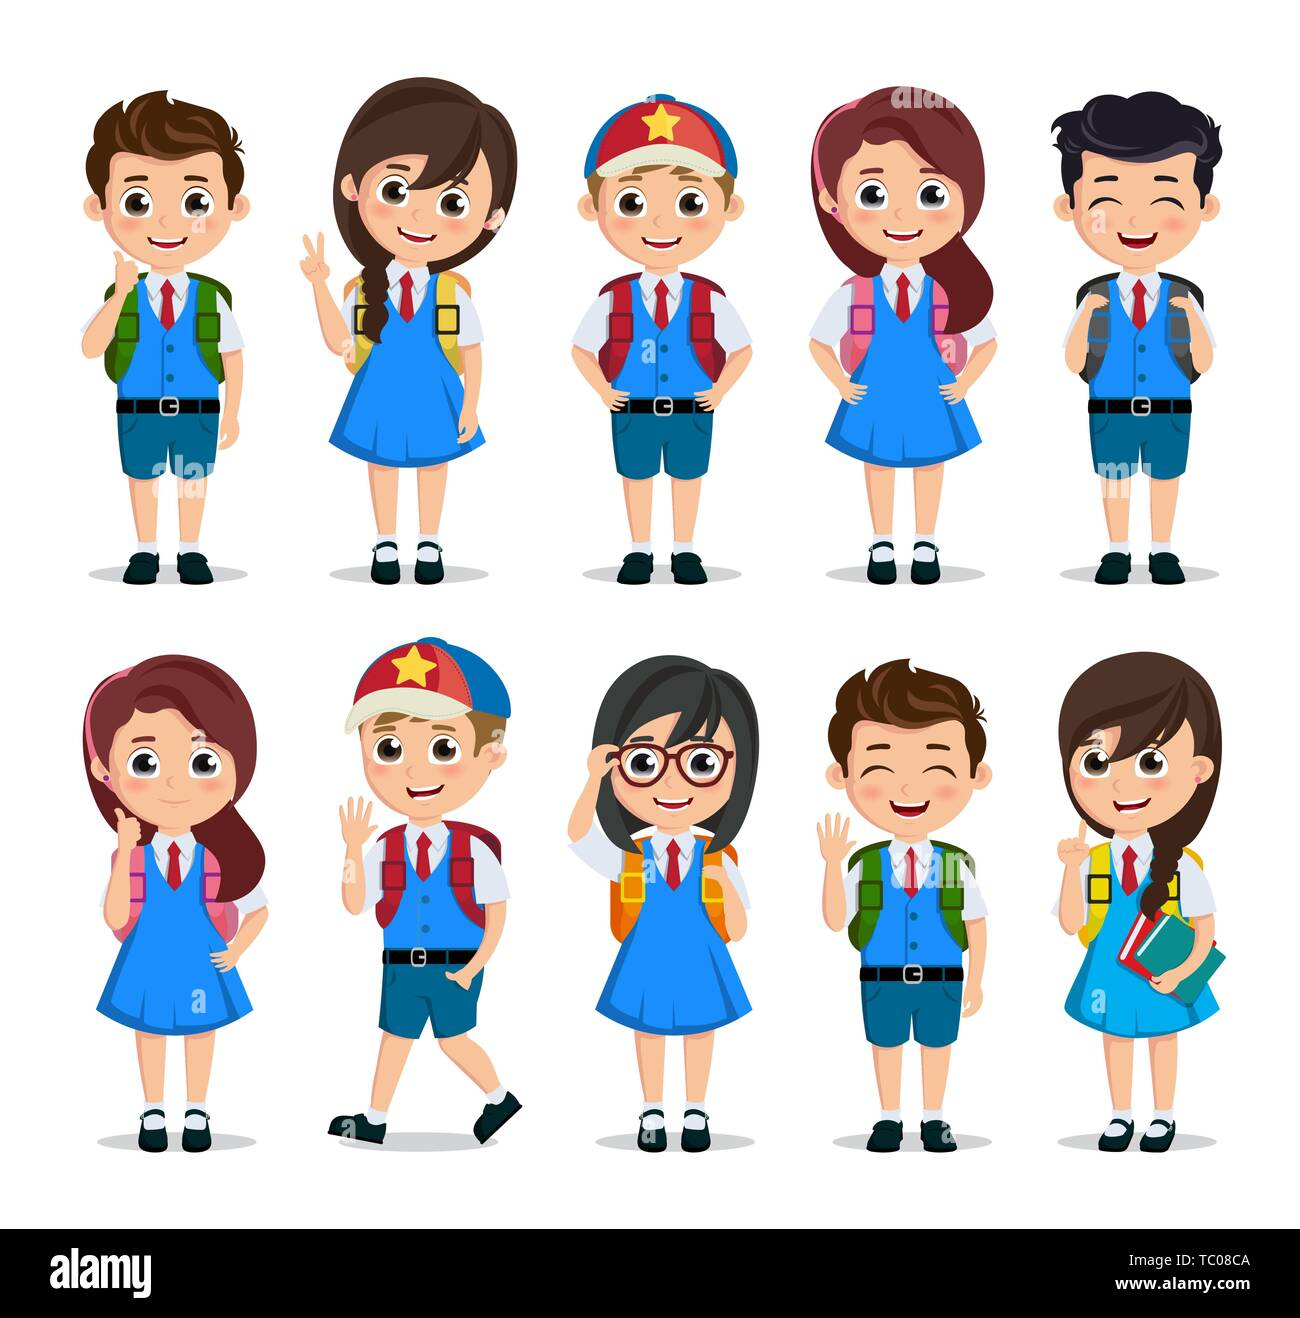 Cartoon Characters High Resolution Stock Photography And Images Alamy